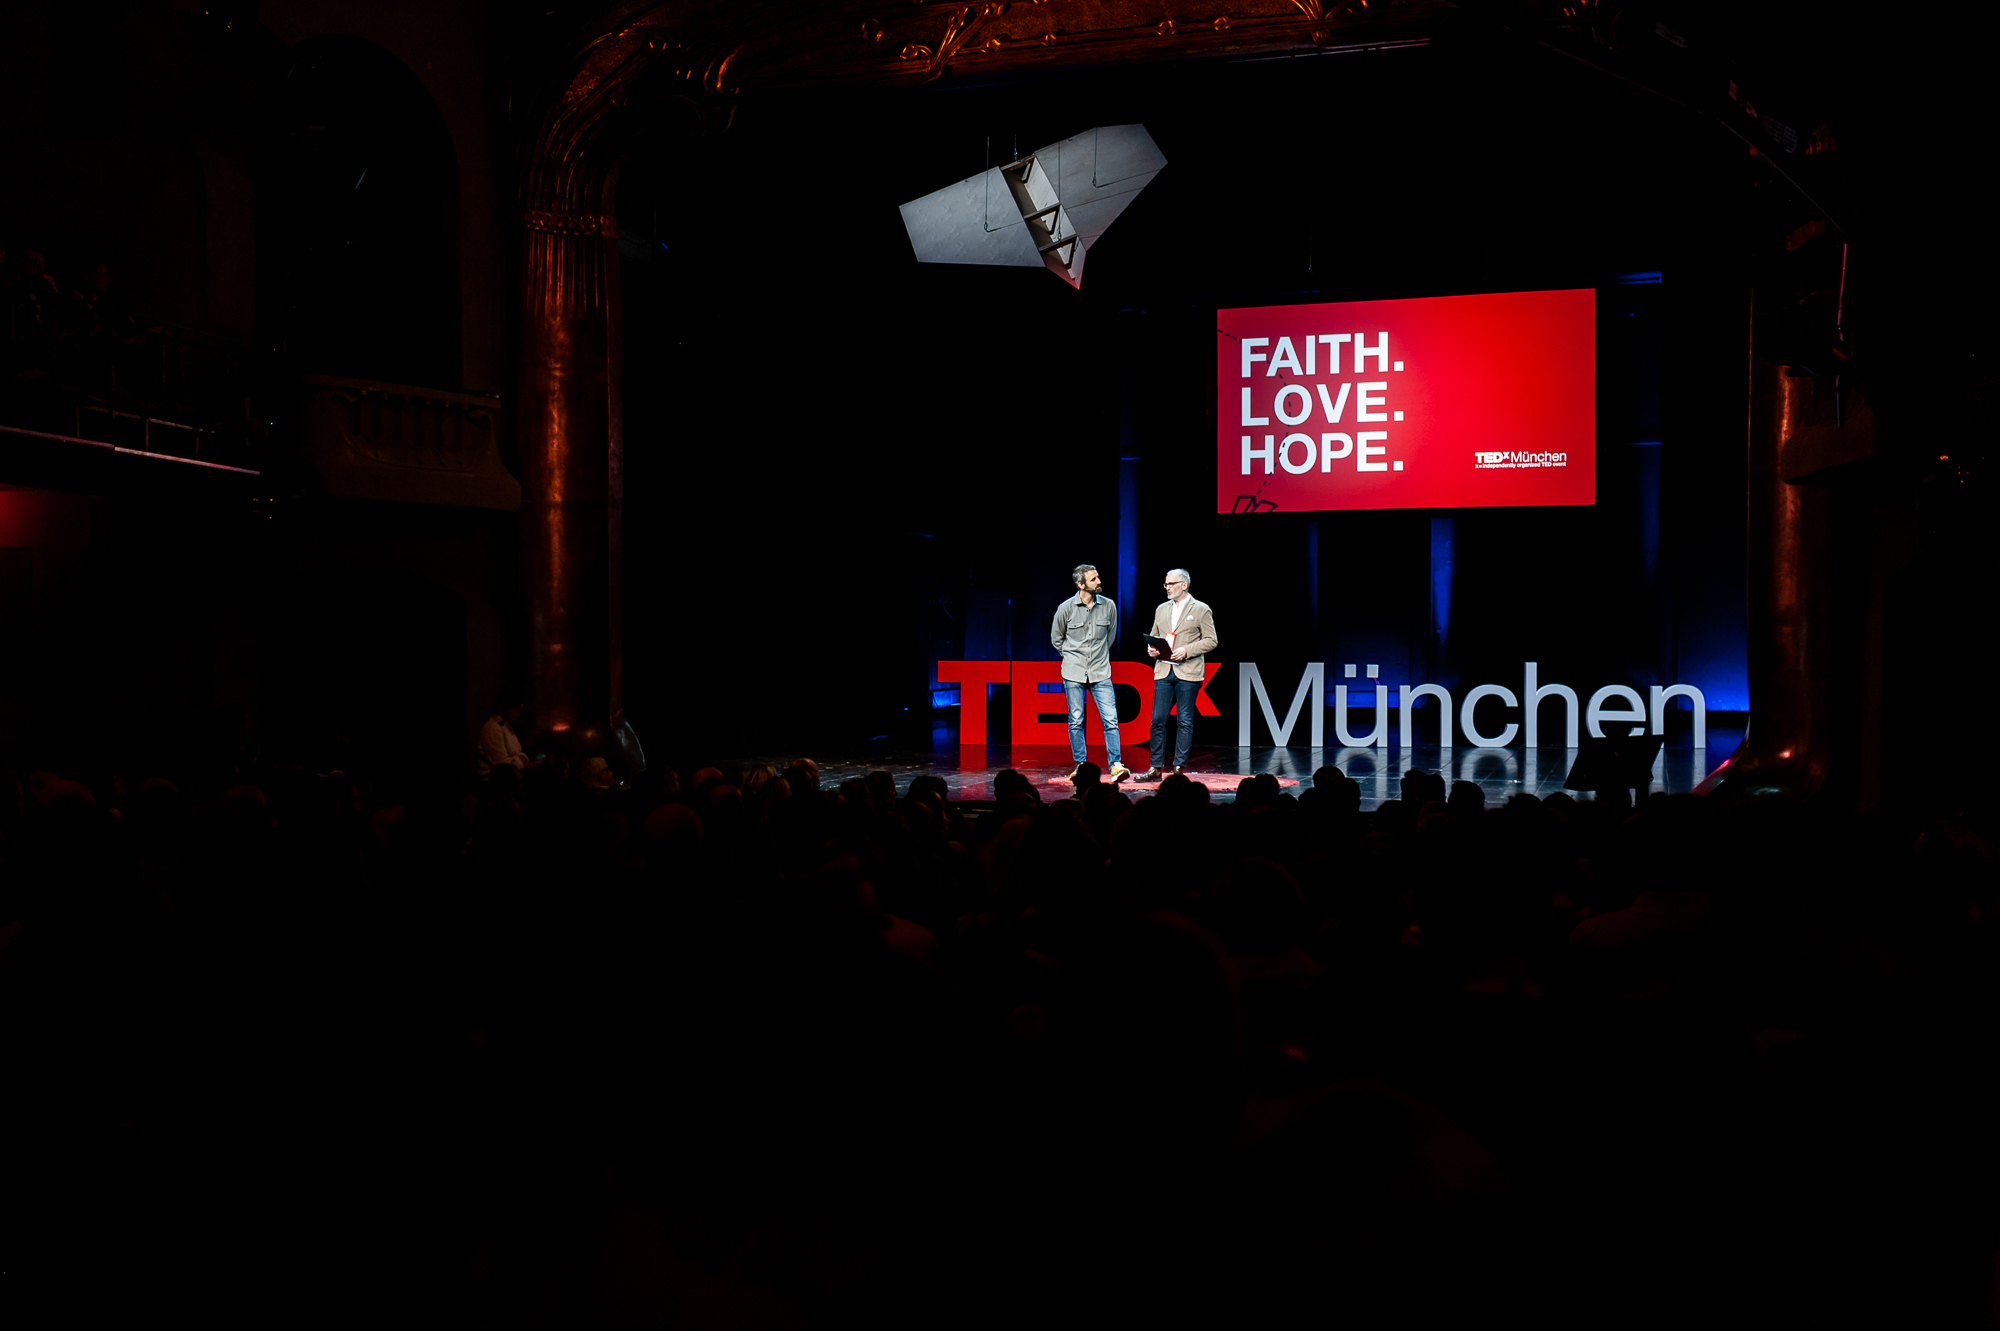 TEDx München 2018, Floko Zibert and Gregor Wöltje on stage opening the afternoon of talks, photo by Denise Stock